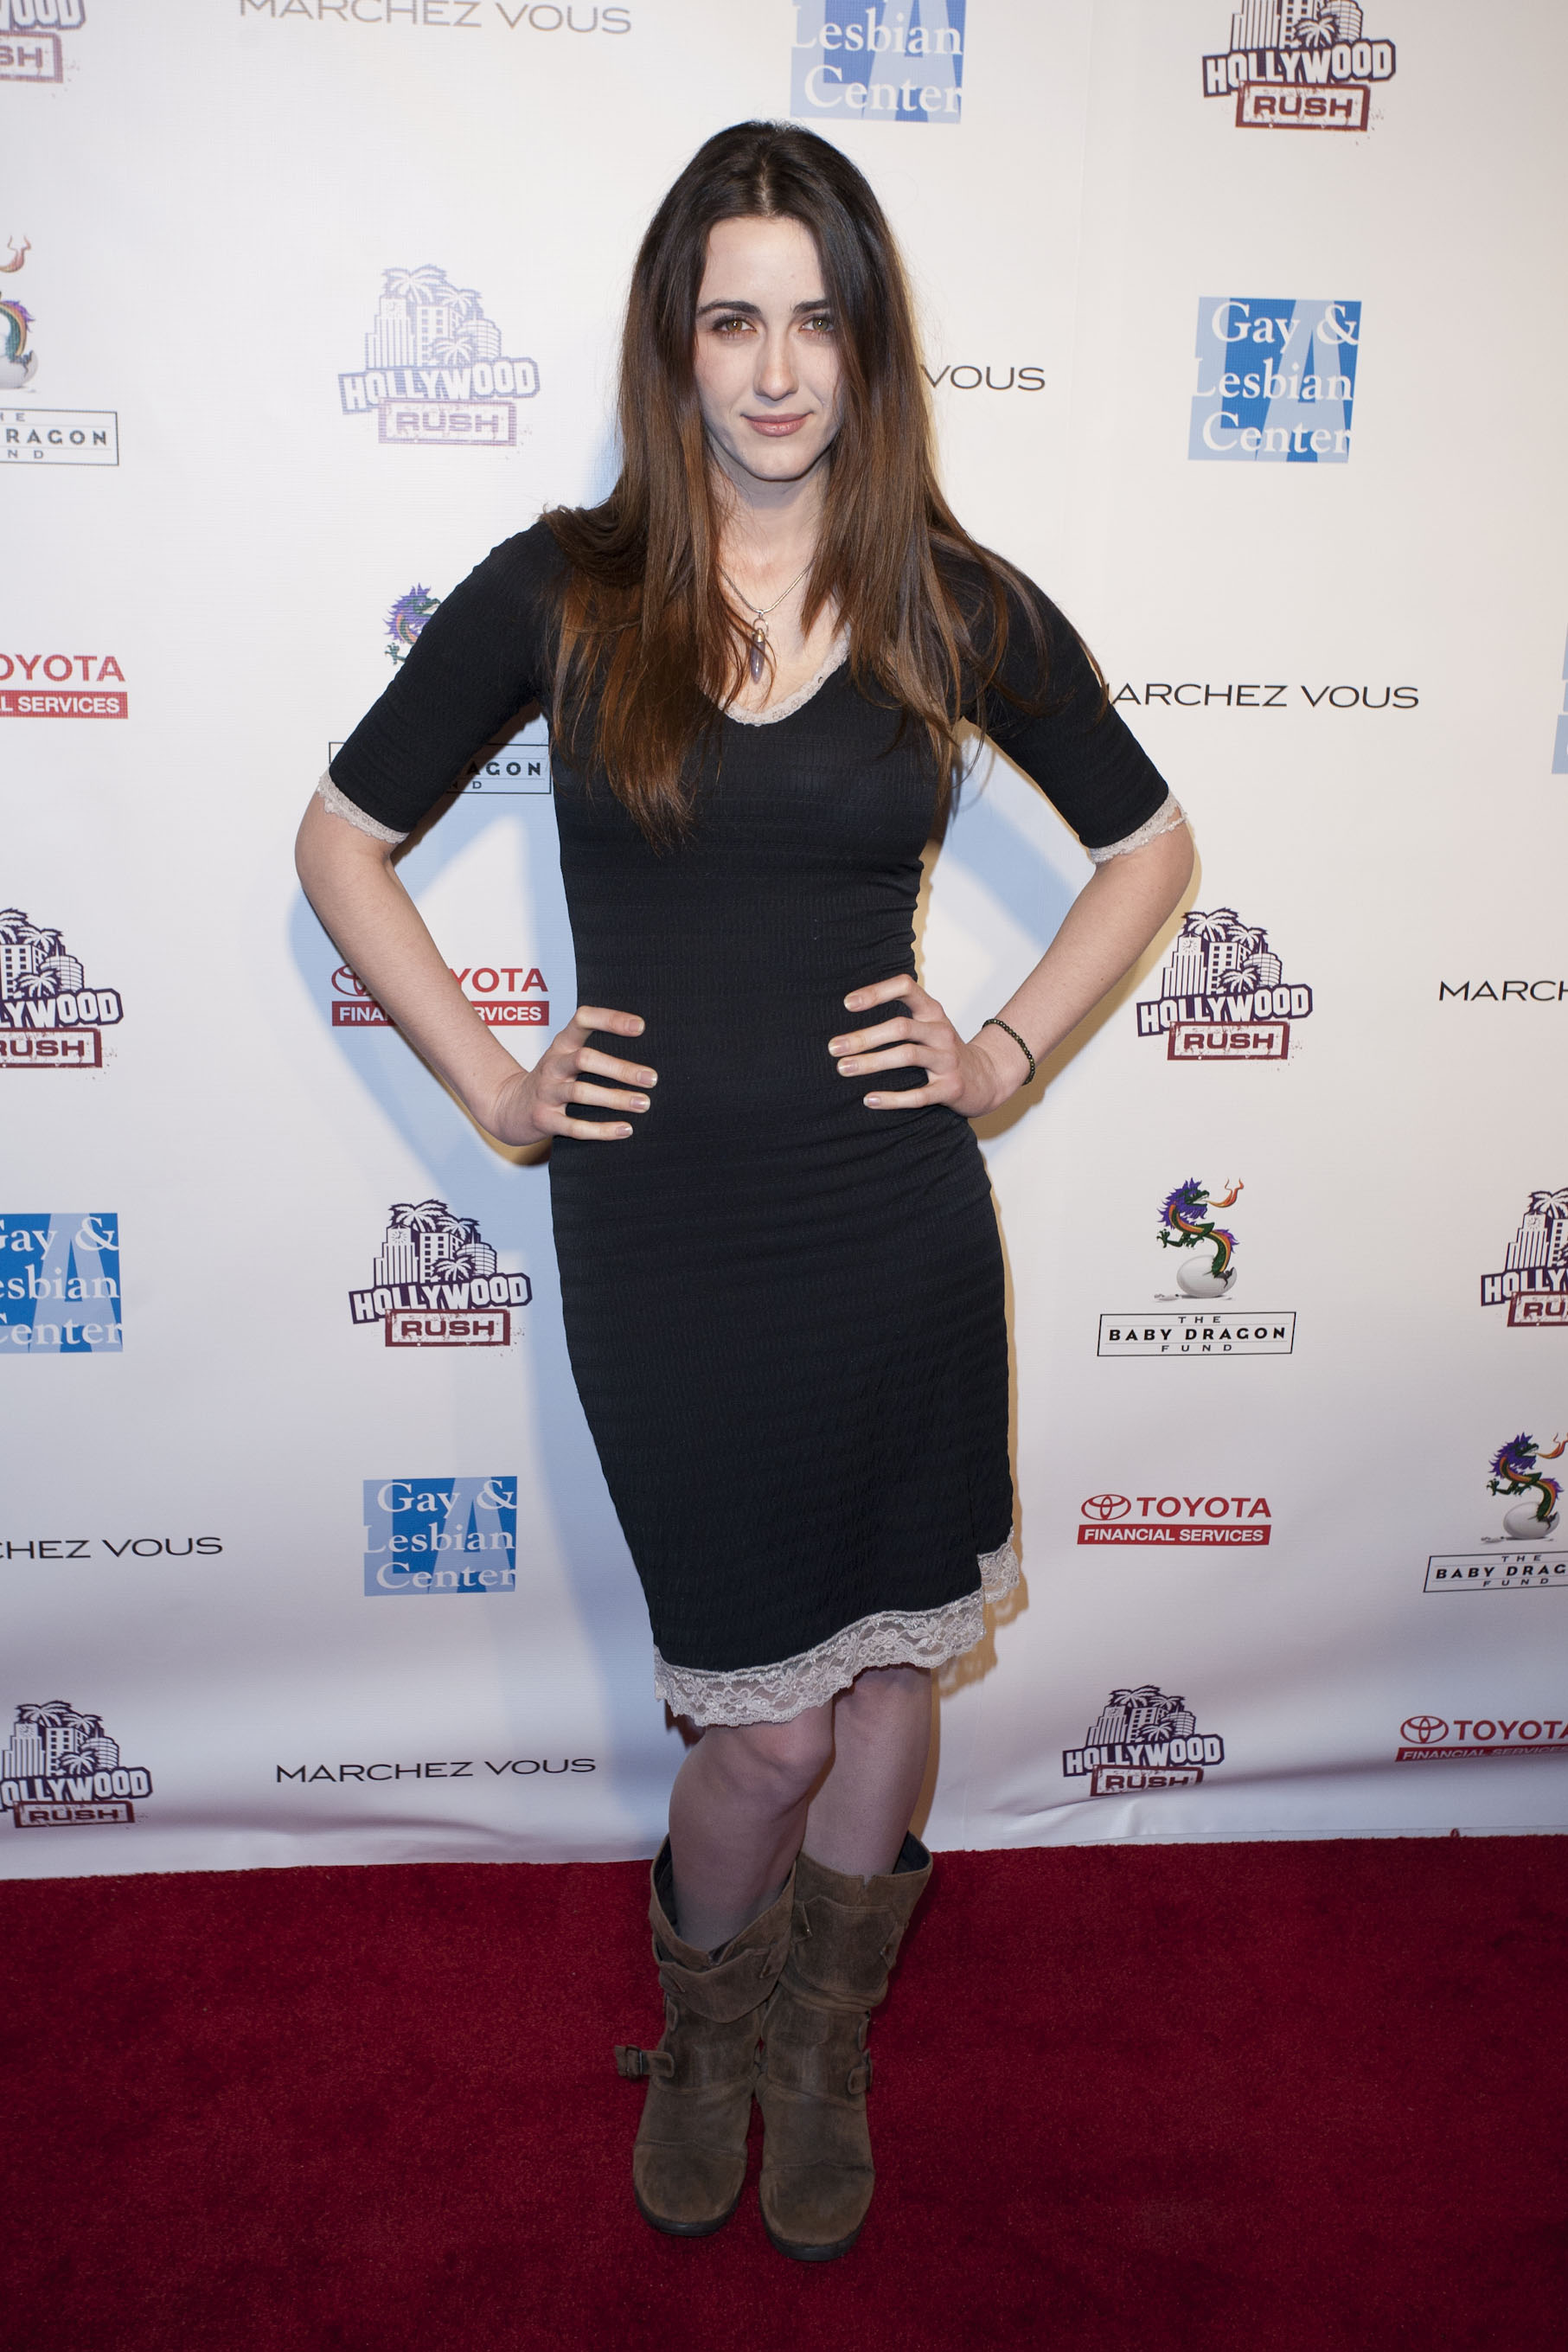 Hollywood Rush Benefit in L.A. 19.02.2012